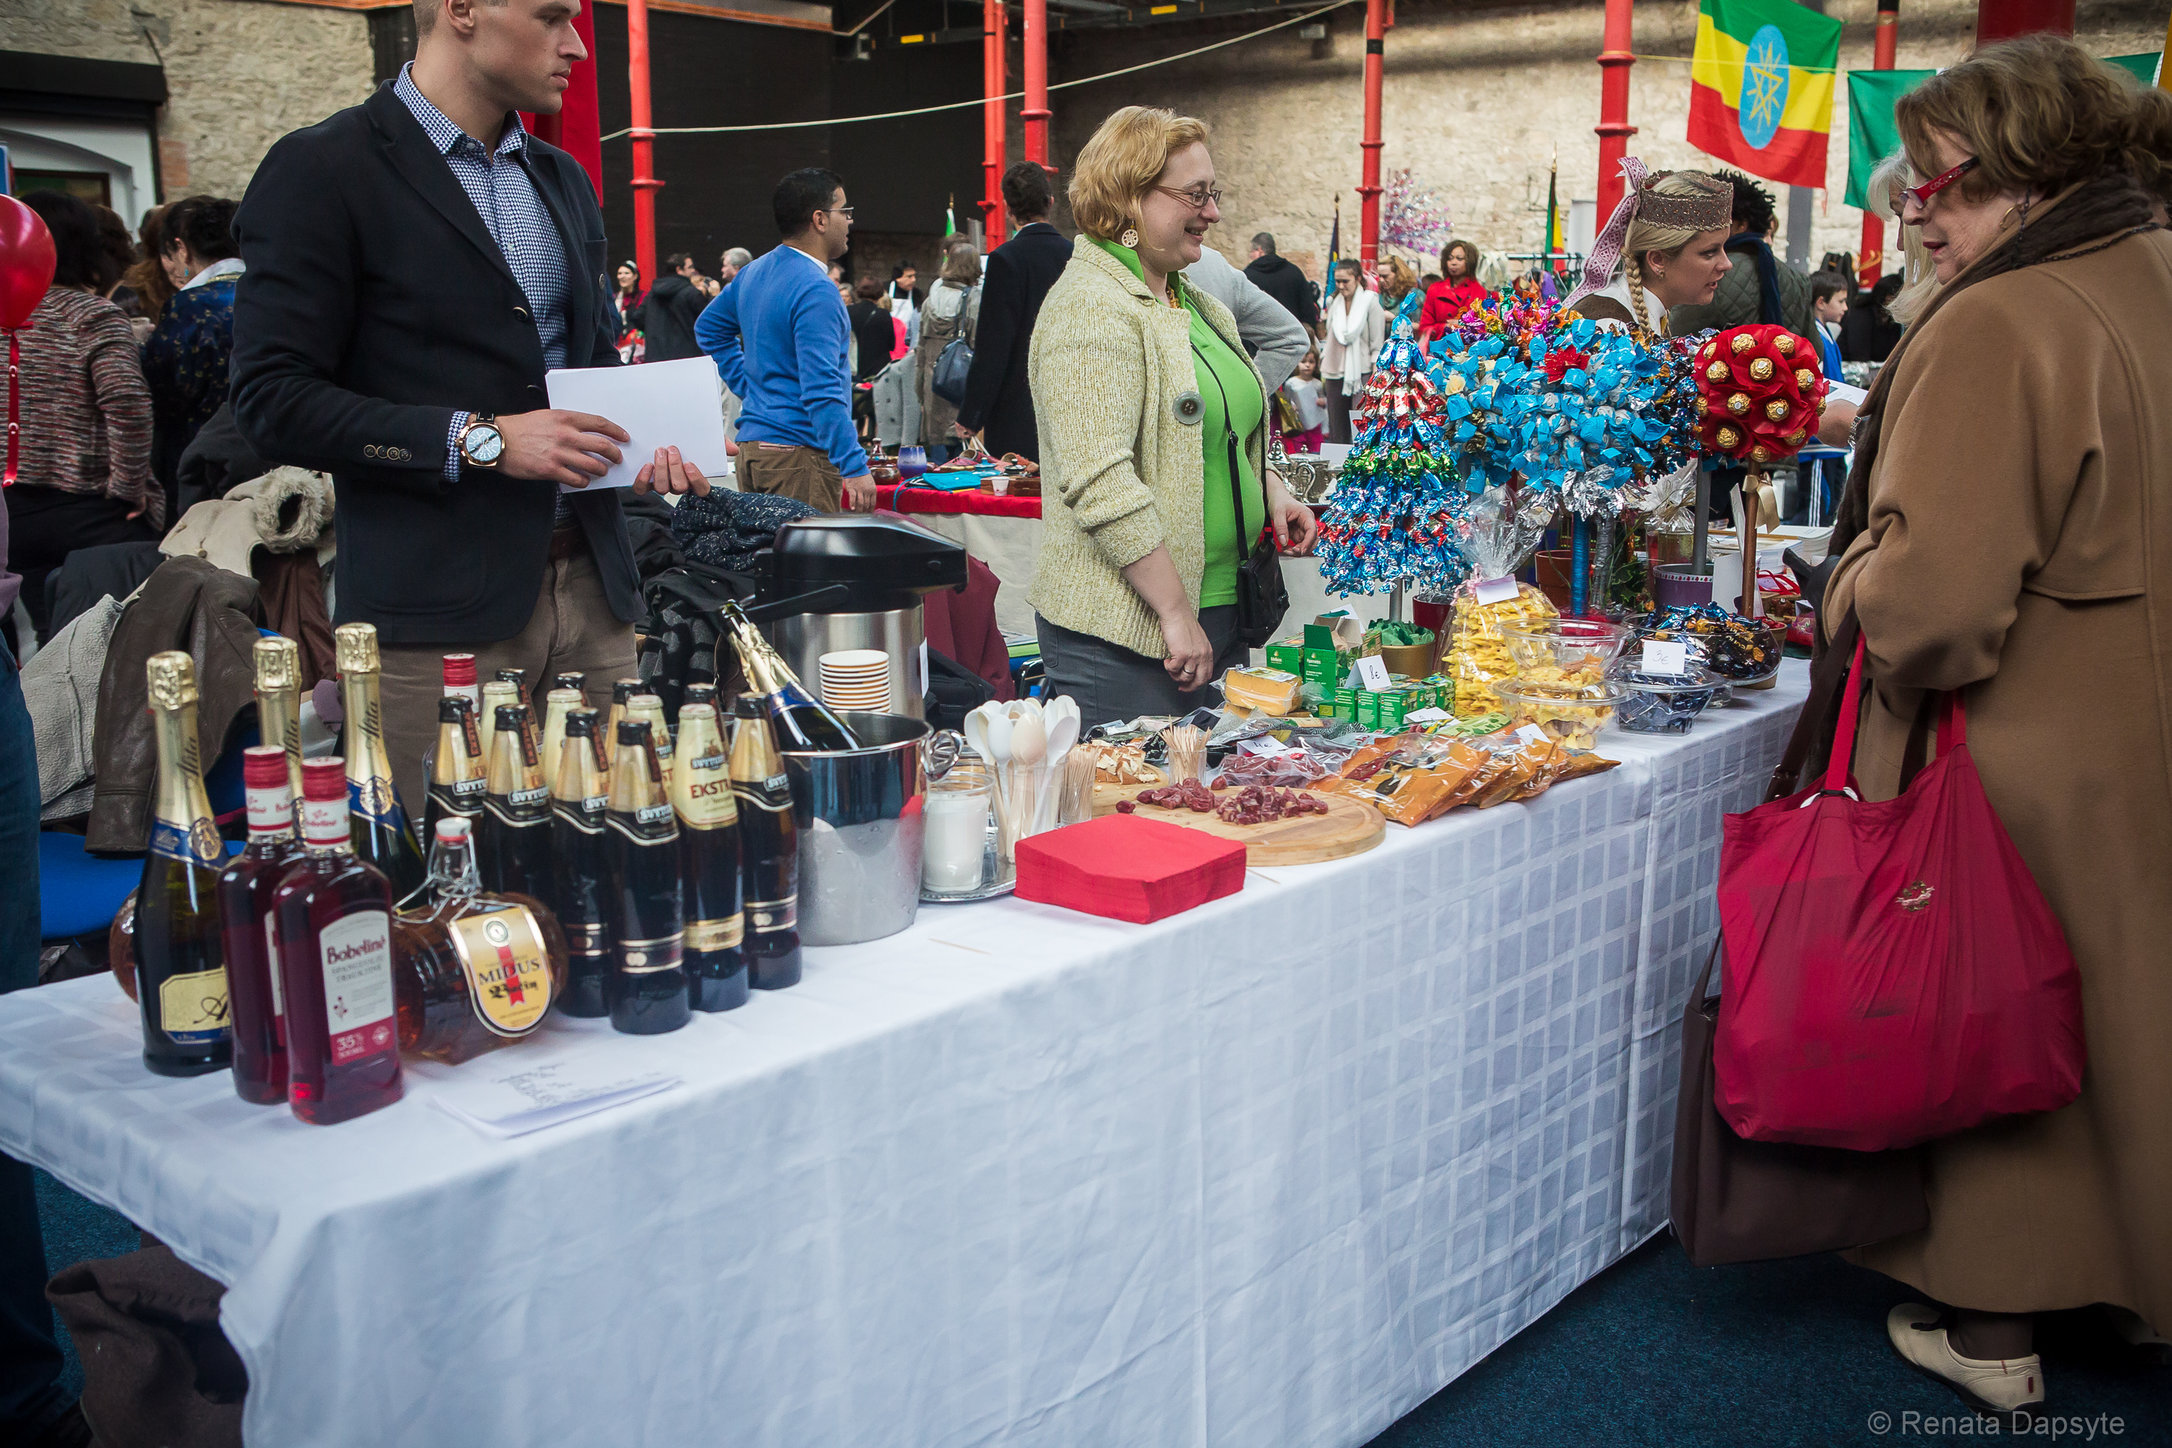 013_International Charity Bazaar Dublin 2013.JPG